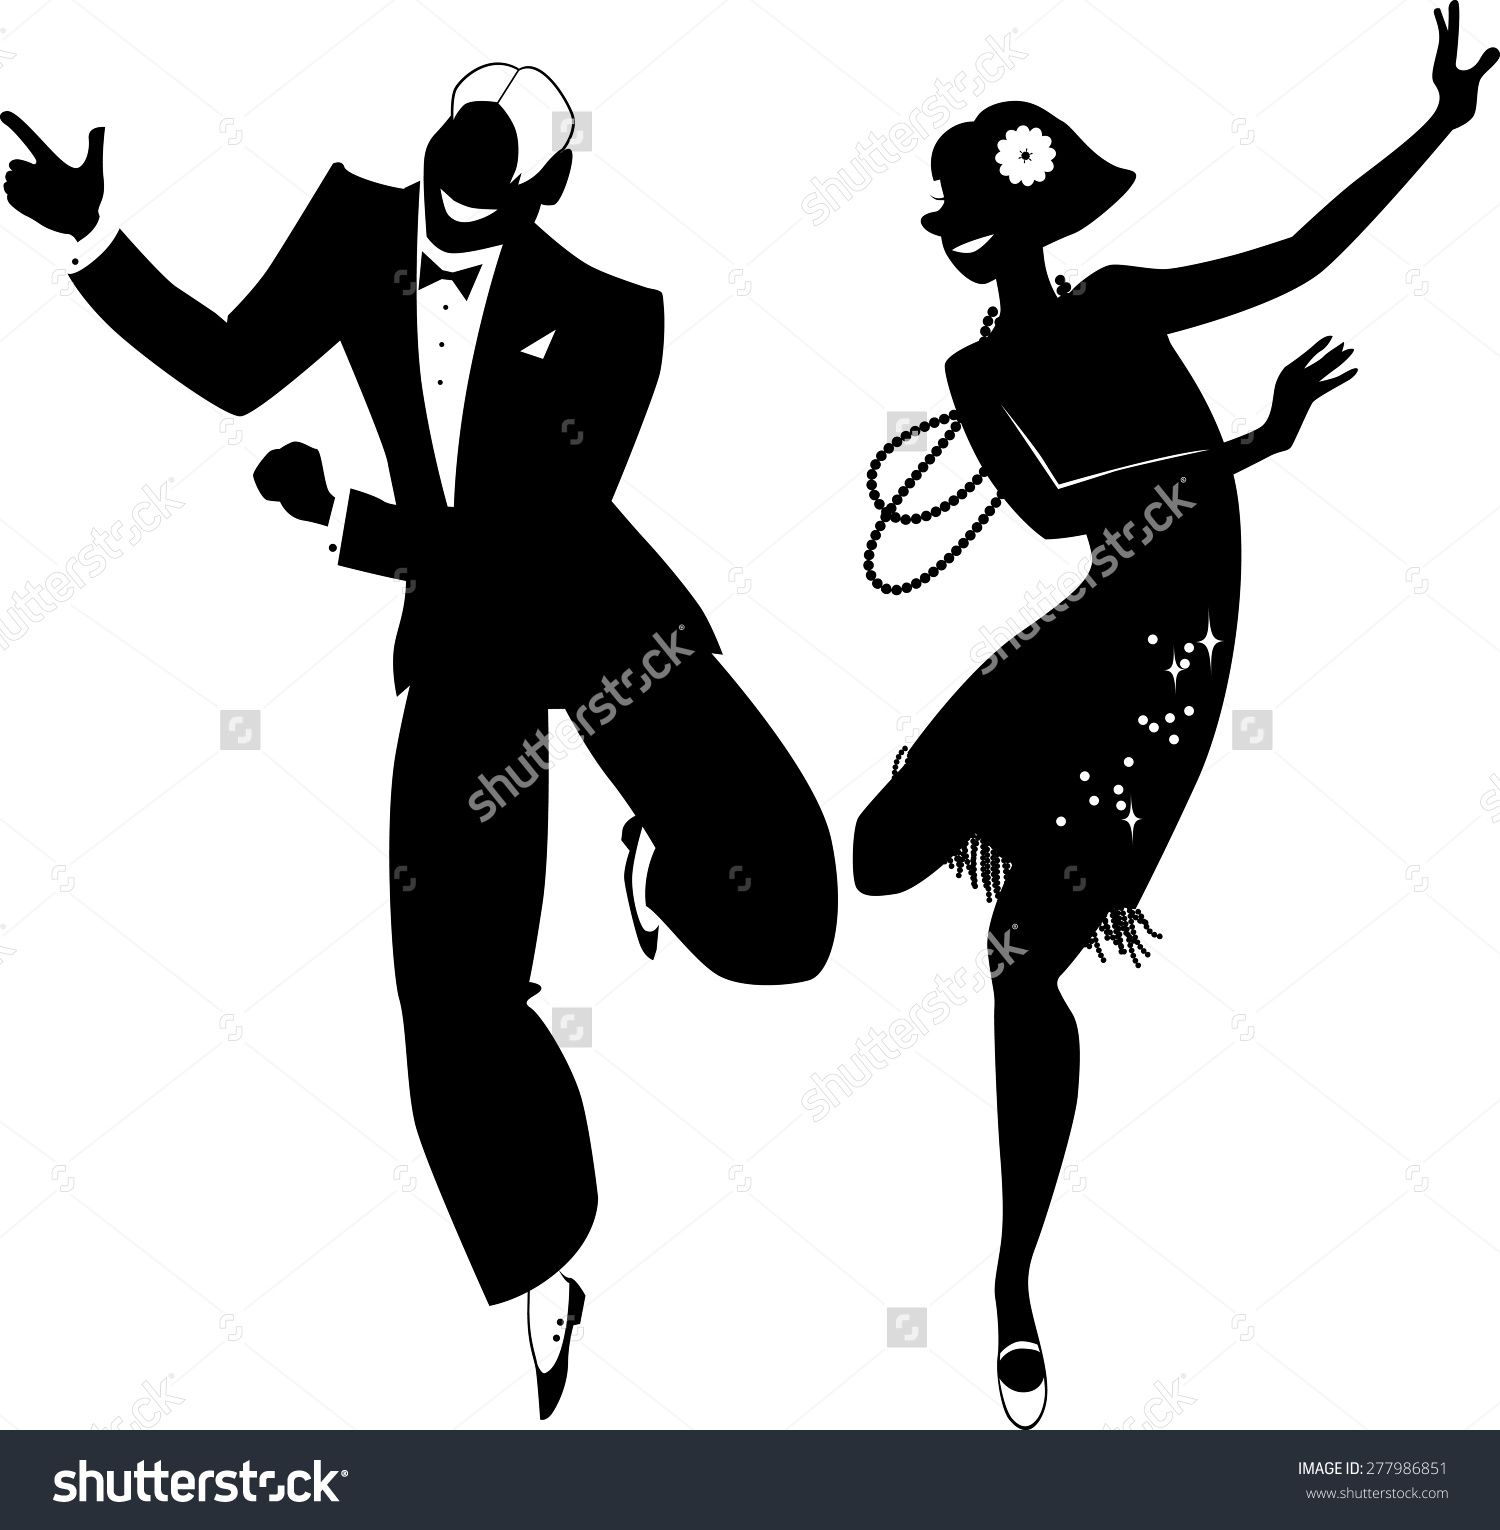 Peace love music dance cartoon clipart black and white vector free library 1920\'s man dancing - Google Search | Tattoo | Dance silhouette ... vector free library